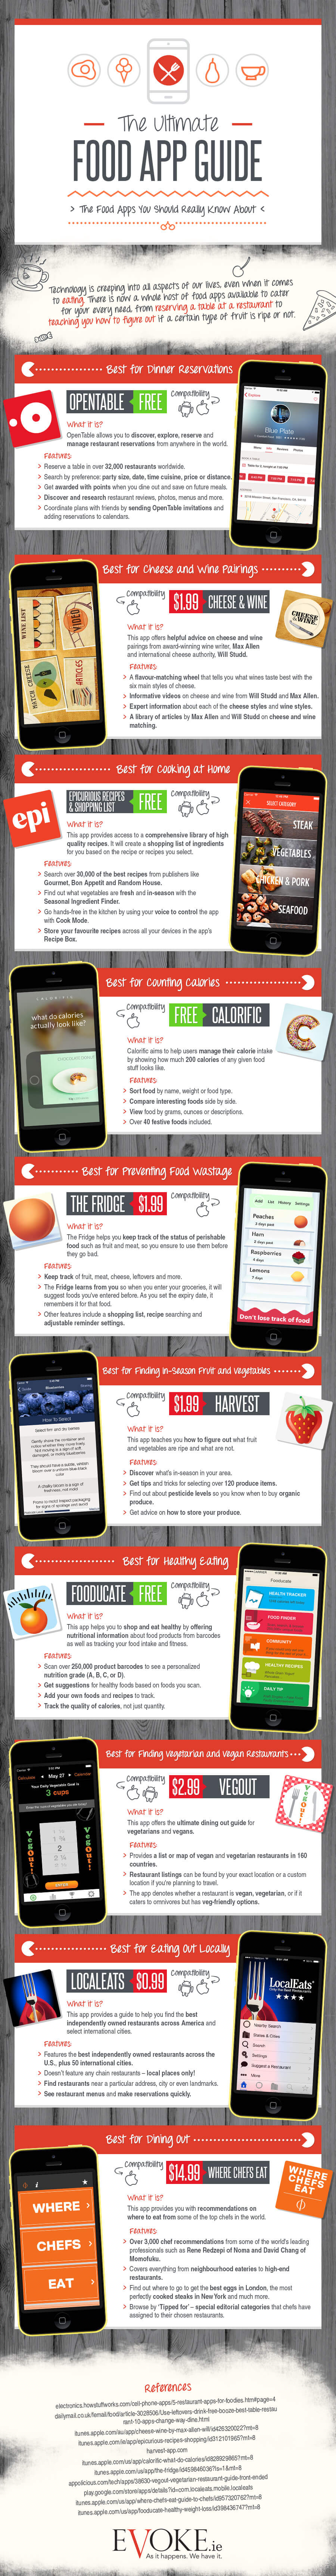 the-food-apps-you-should-really-know-about-infographic